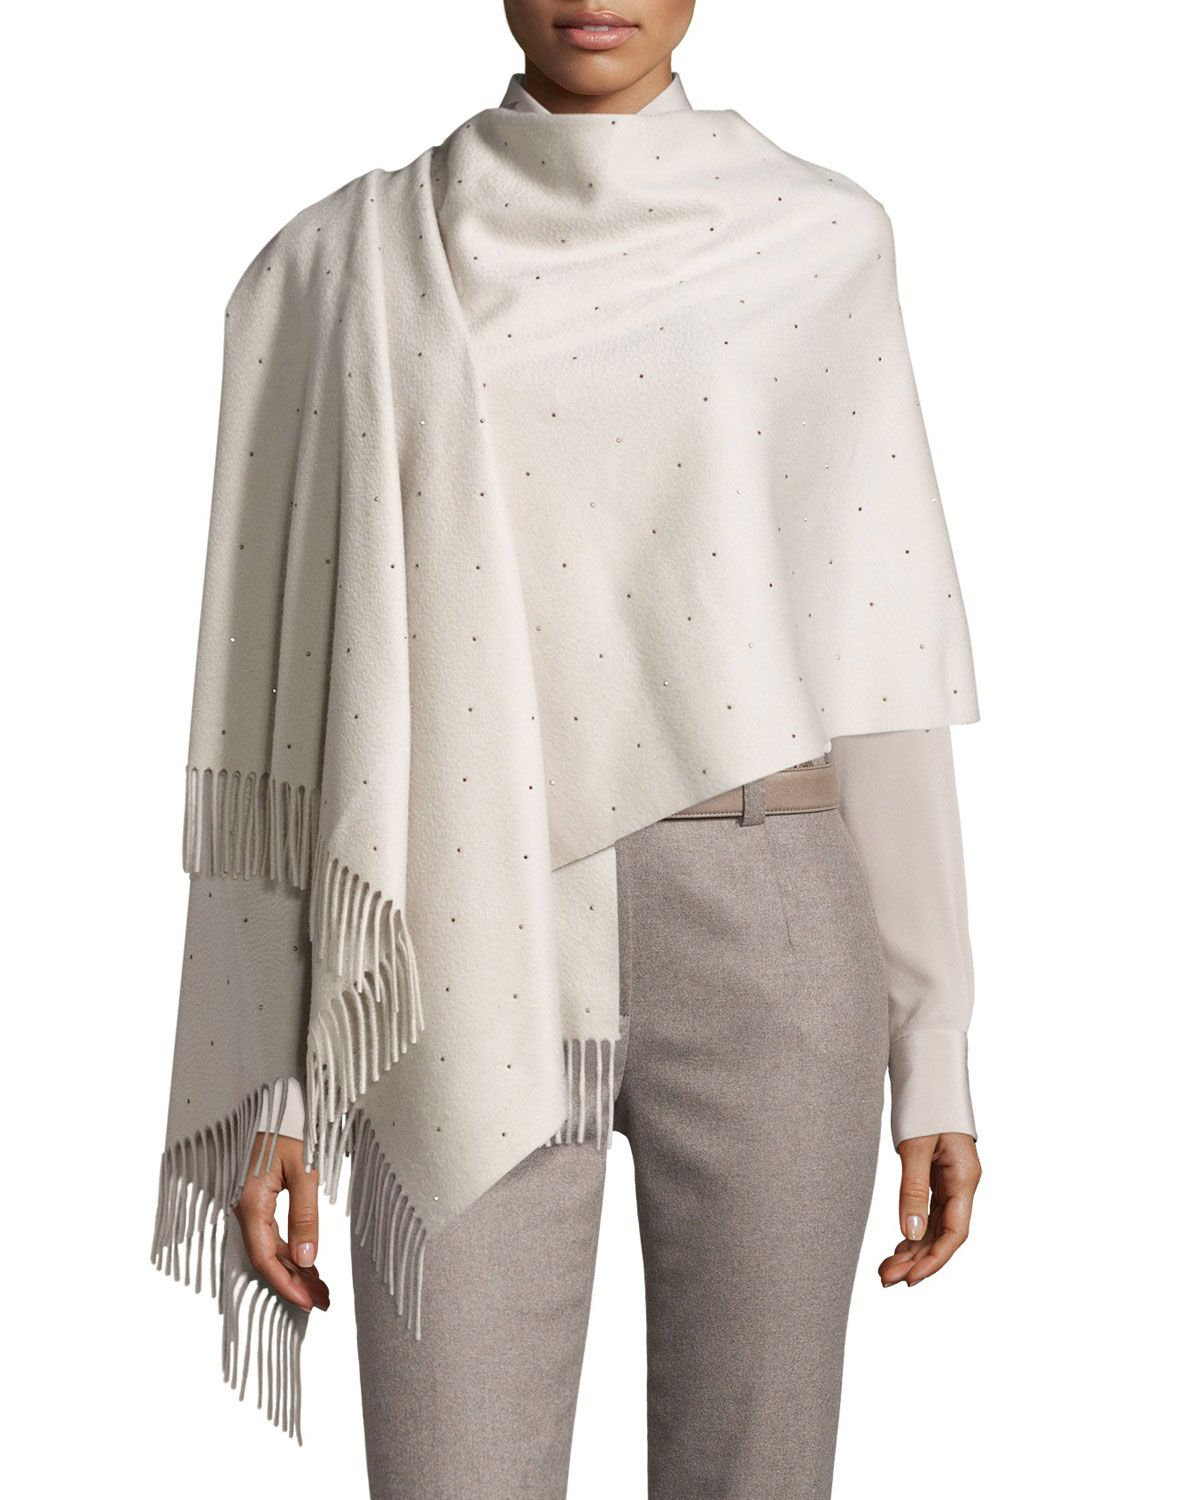 Women Cashmere Wool Scarf Mantella Winter Shawl Poncho Stole Blanket Top Quality